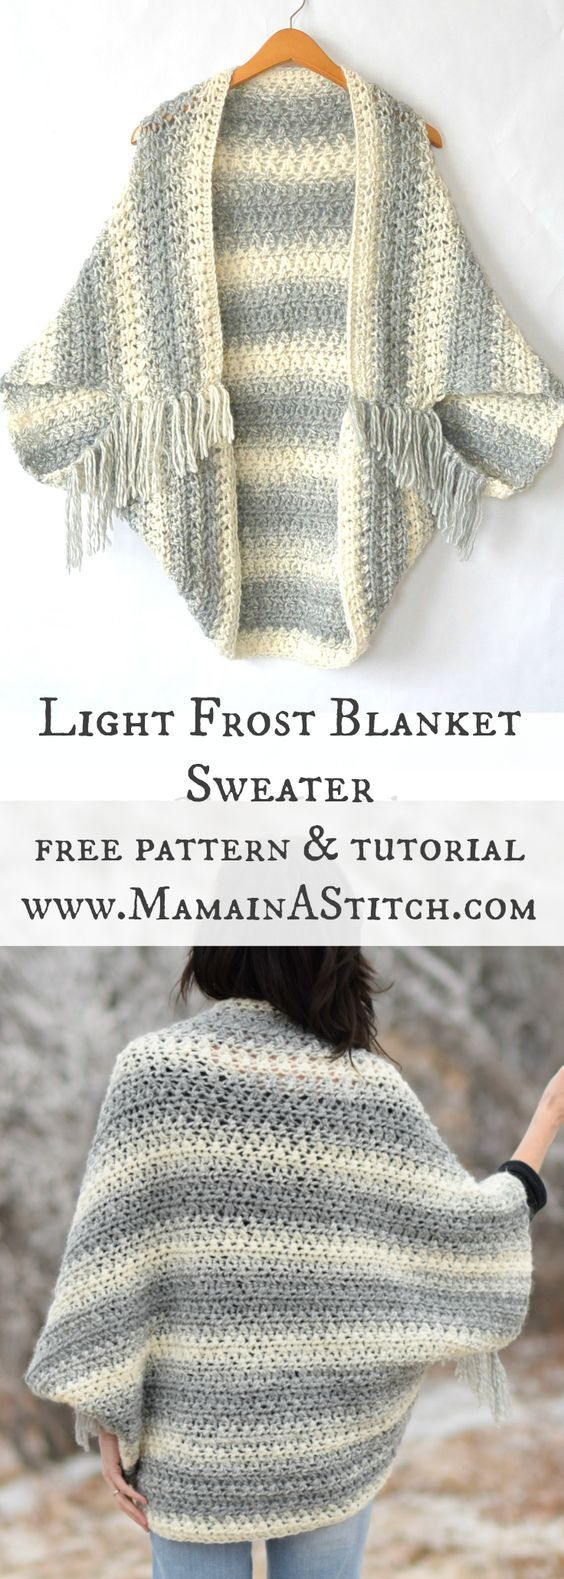 Light frost easy blanket sweater crochet pattern via mama in a stitch knit and crochet